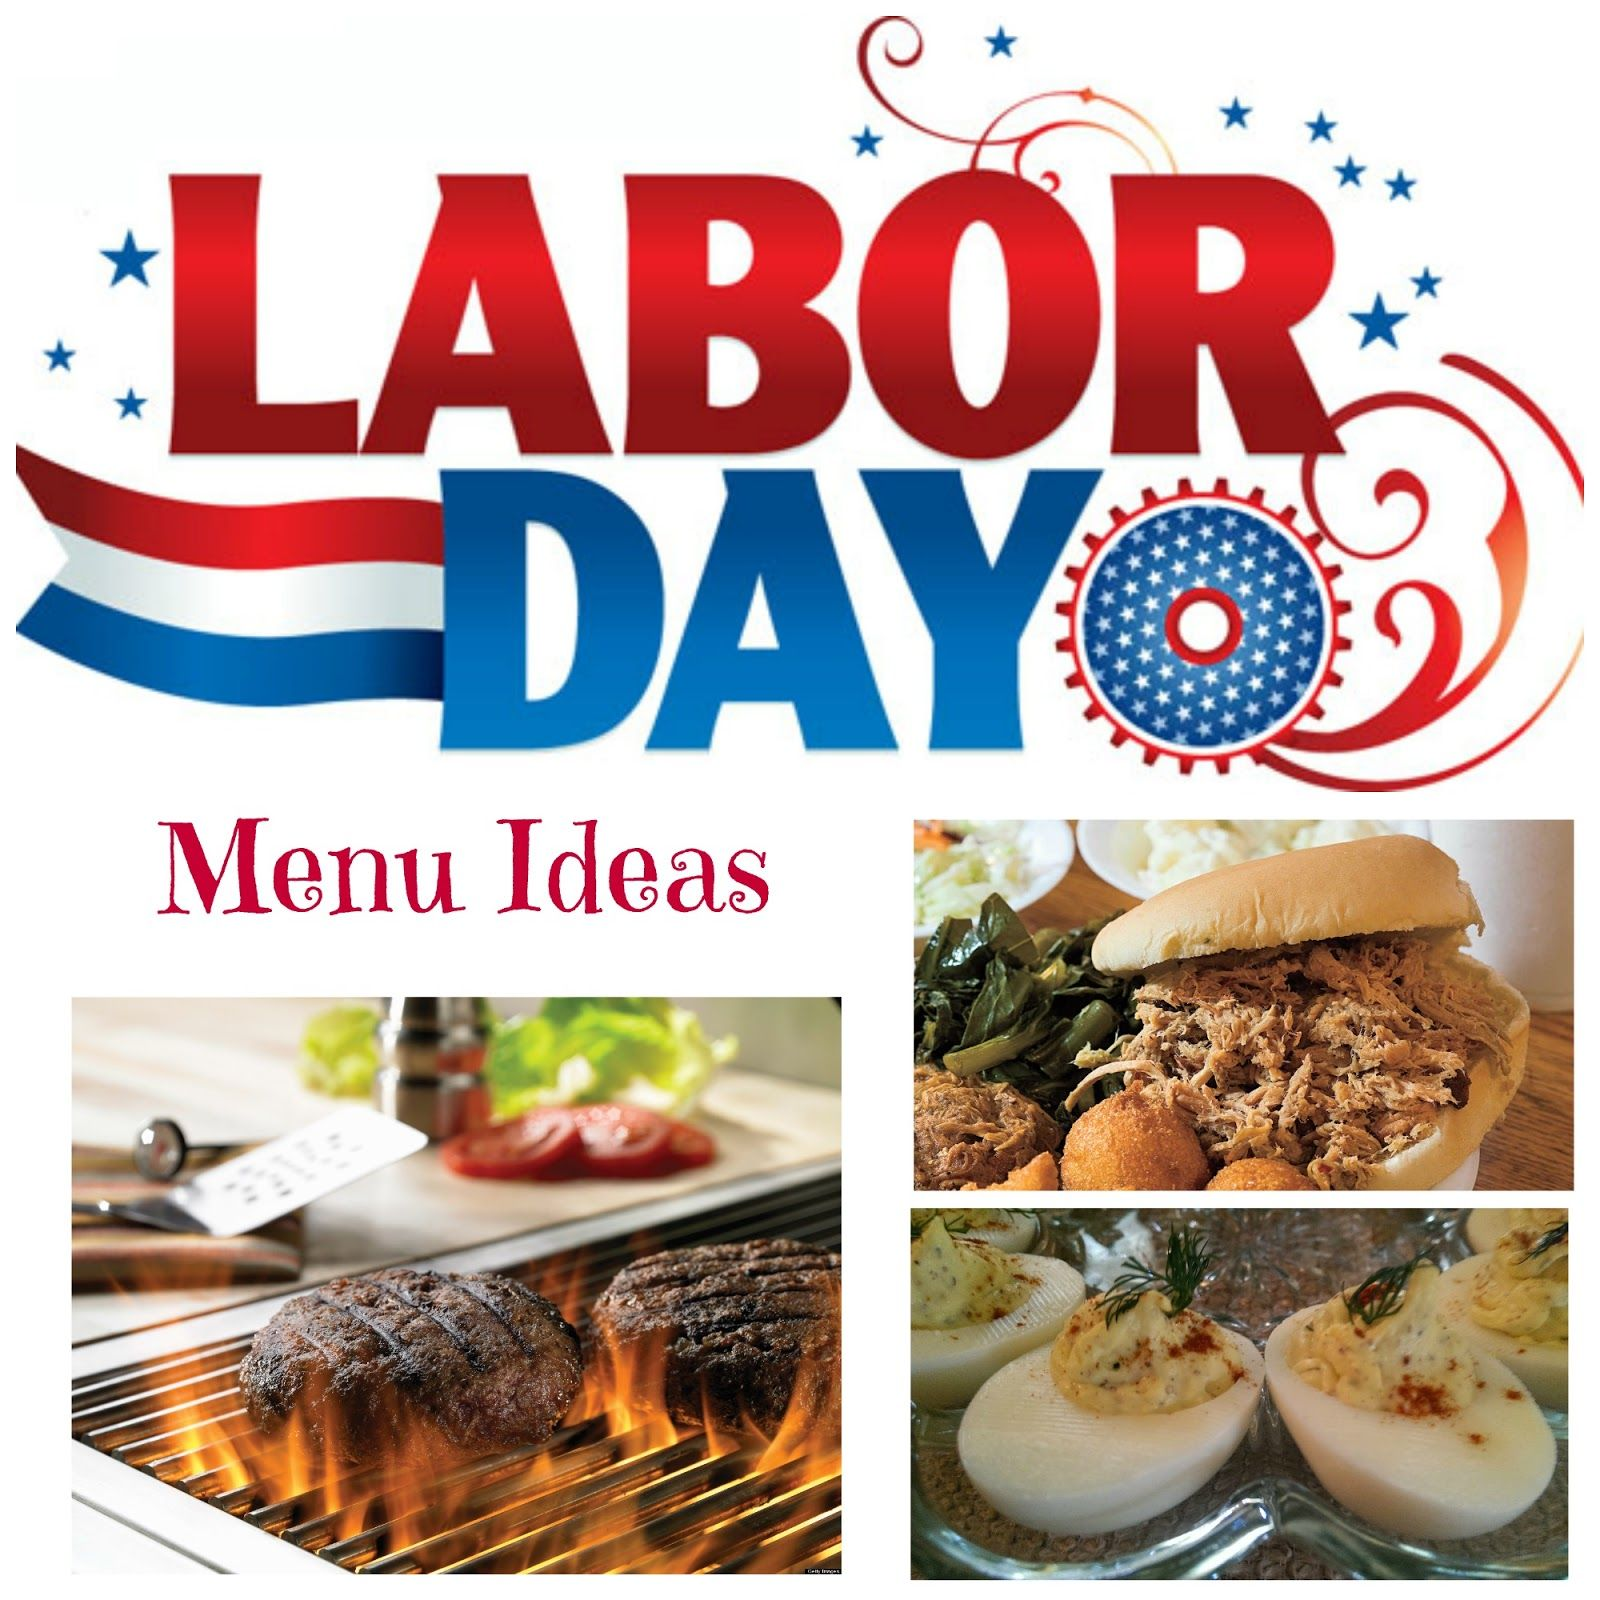 labor day, labor day menu, holidays, southern cooking, ideas